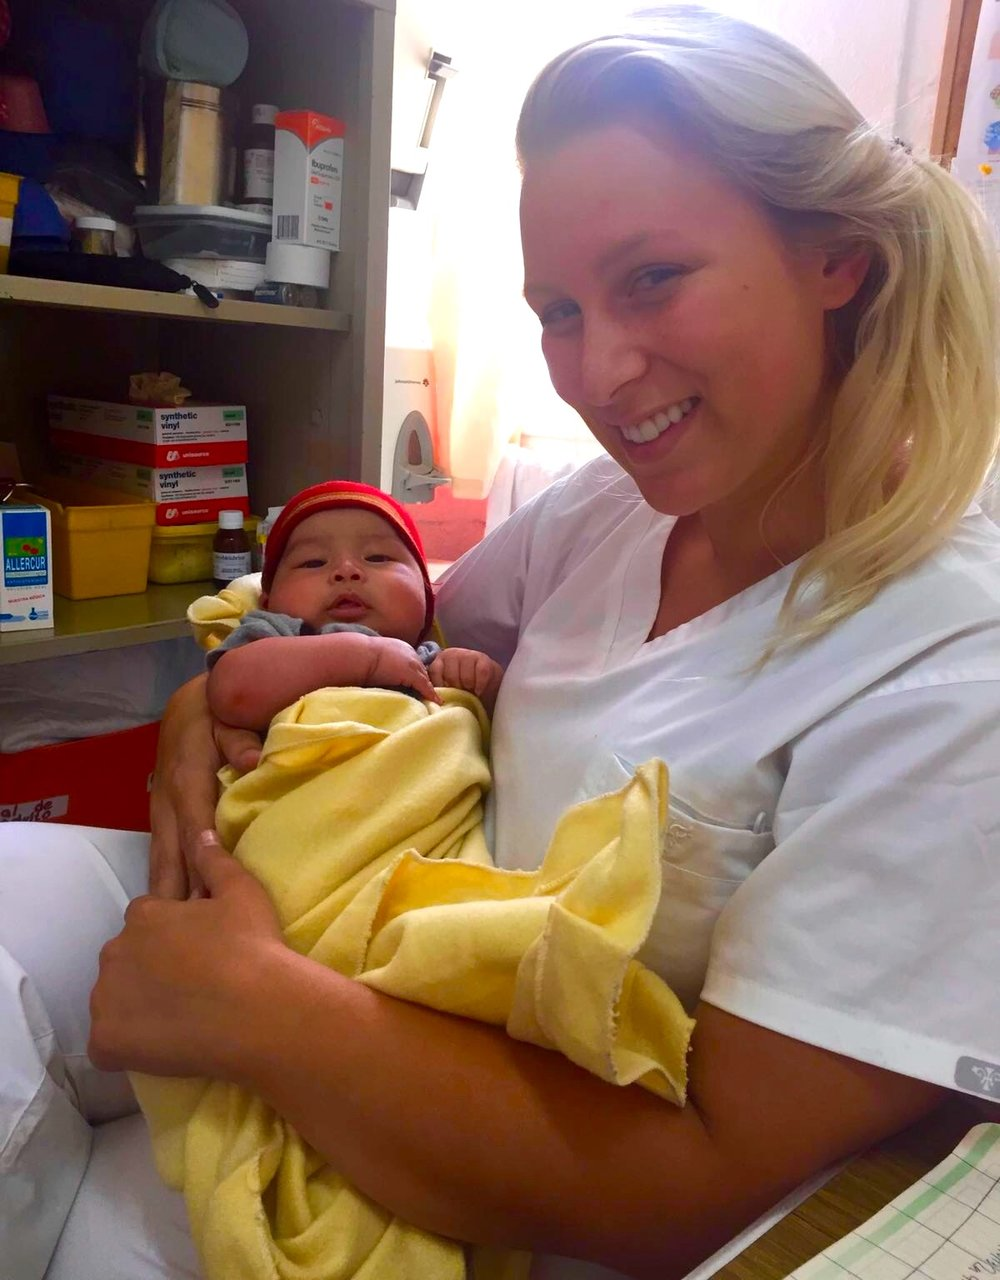 Prior to joining One Community Health, Caitlyn Witte, BSCN, taught breastfeeding at clinics in Guatemala, where she helped moms and babies alike.